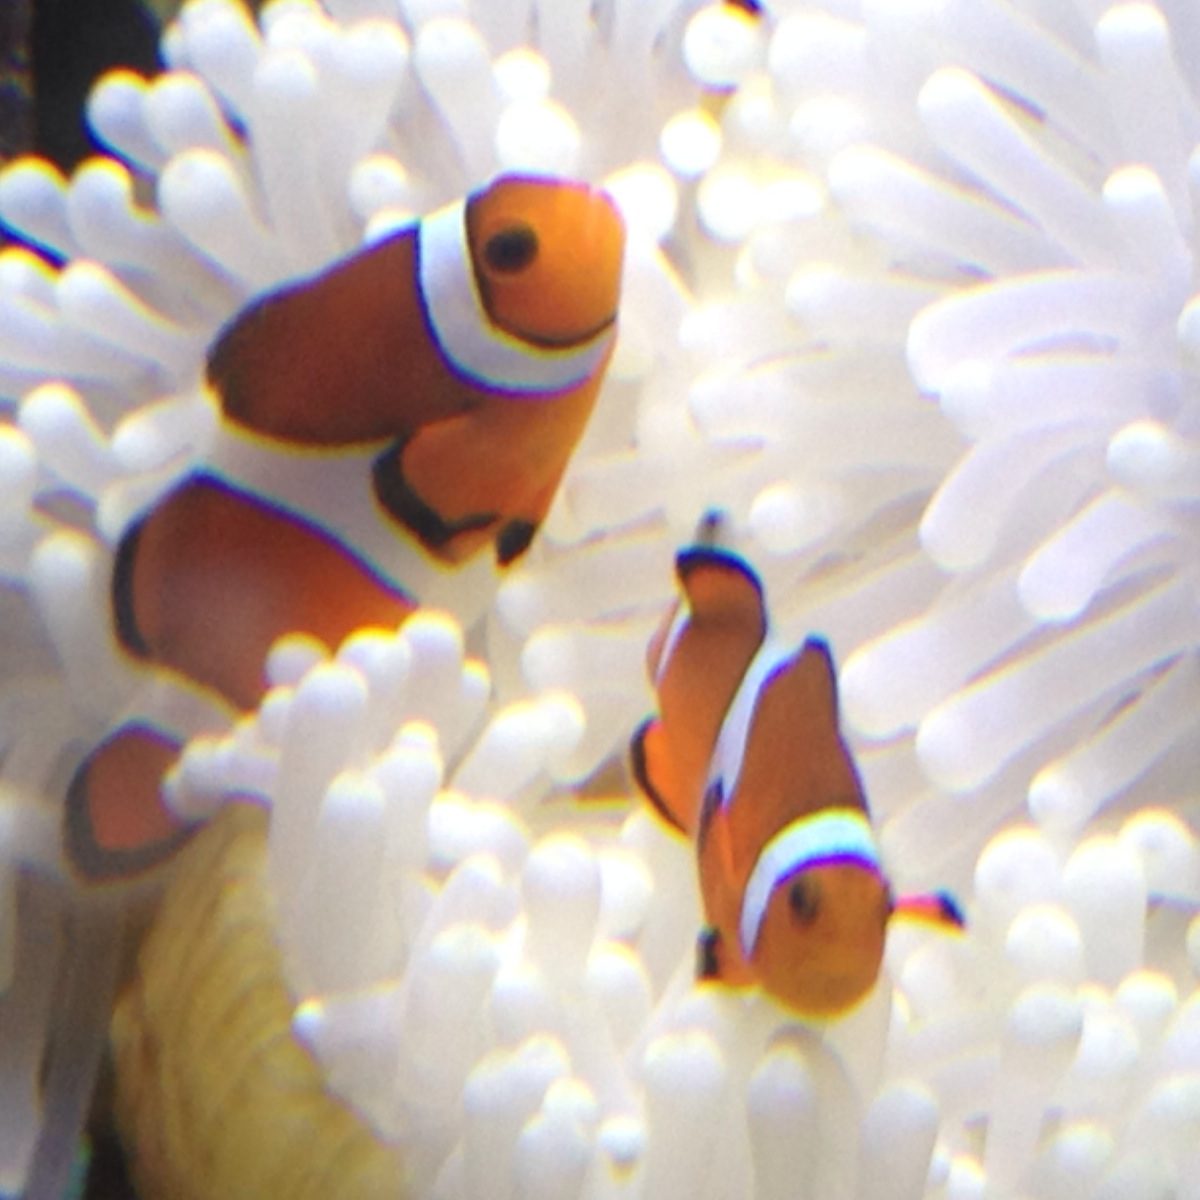 Clowns love the new anemone